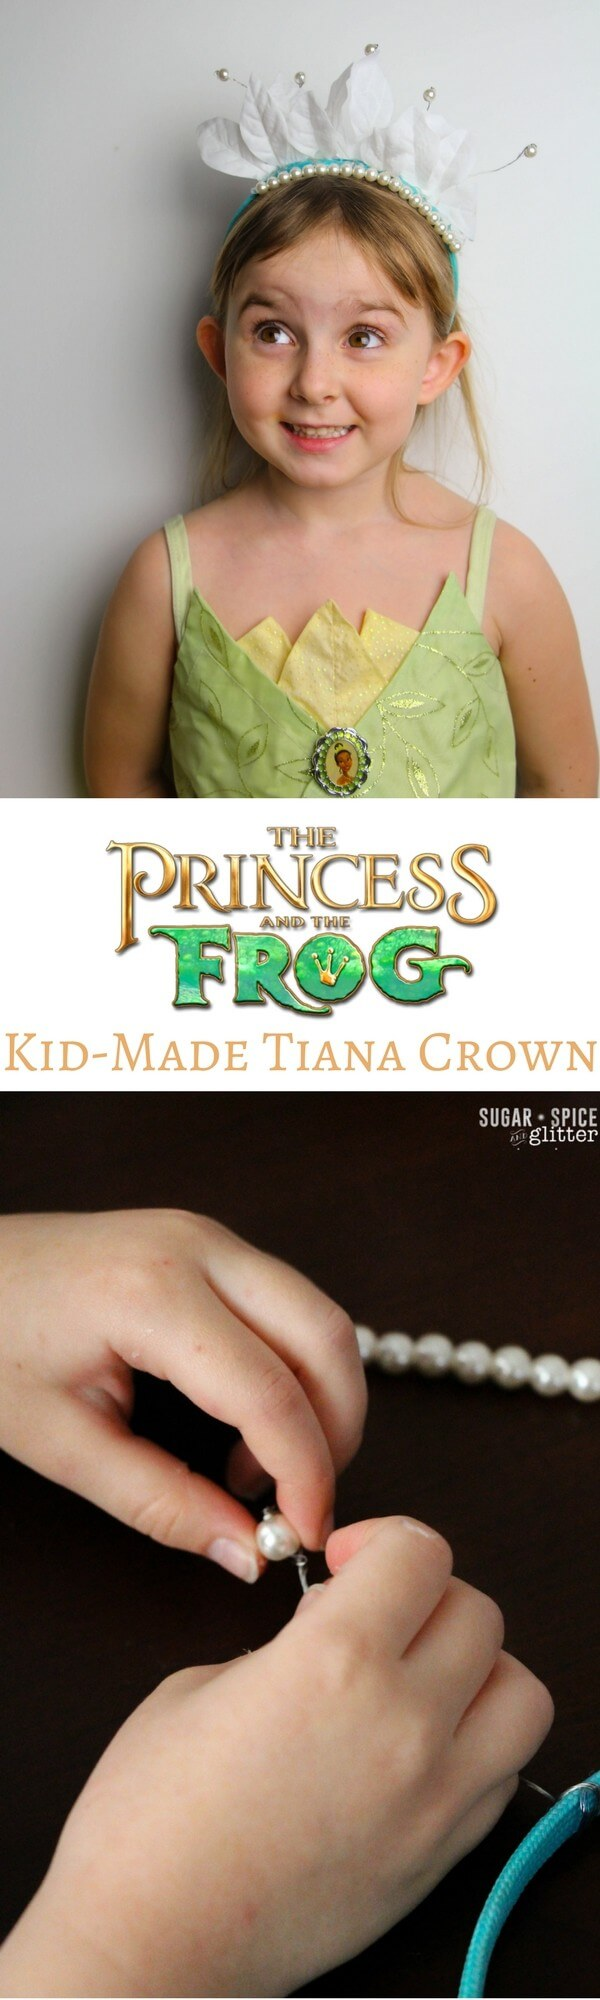 How to make a quick and easy Princess Tiana tiara headband from the Disney movie The Princess and the Frog. This cute Disney craft is a the perfect touch to a Princess Tiana costume or Disneybounding outfit